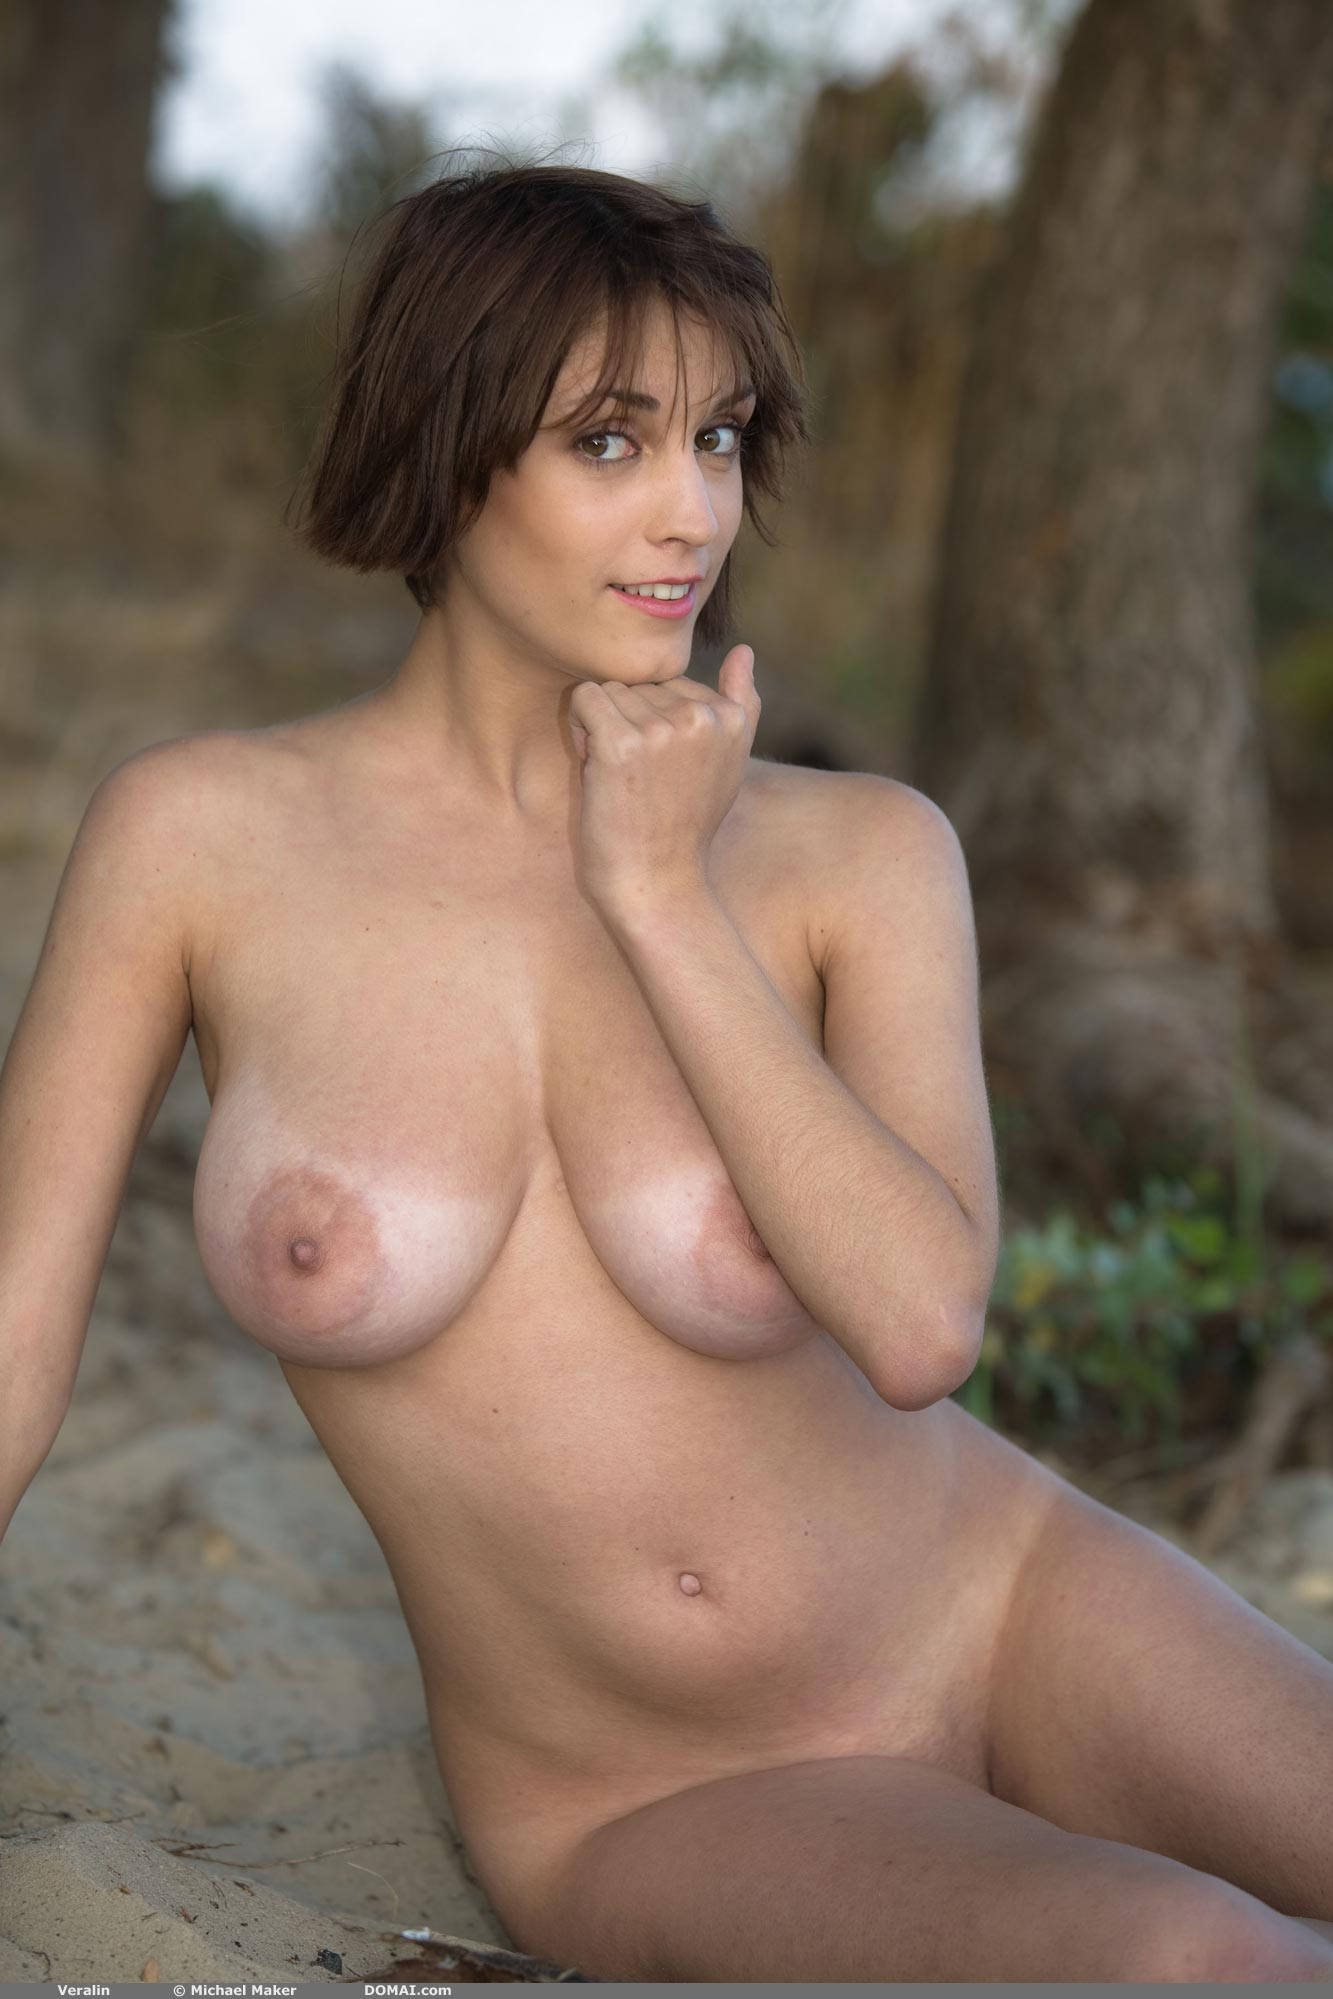 Sore breasts and nipples